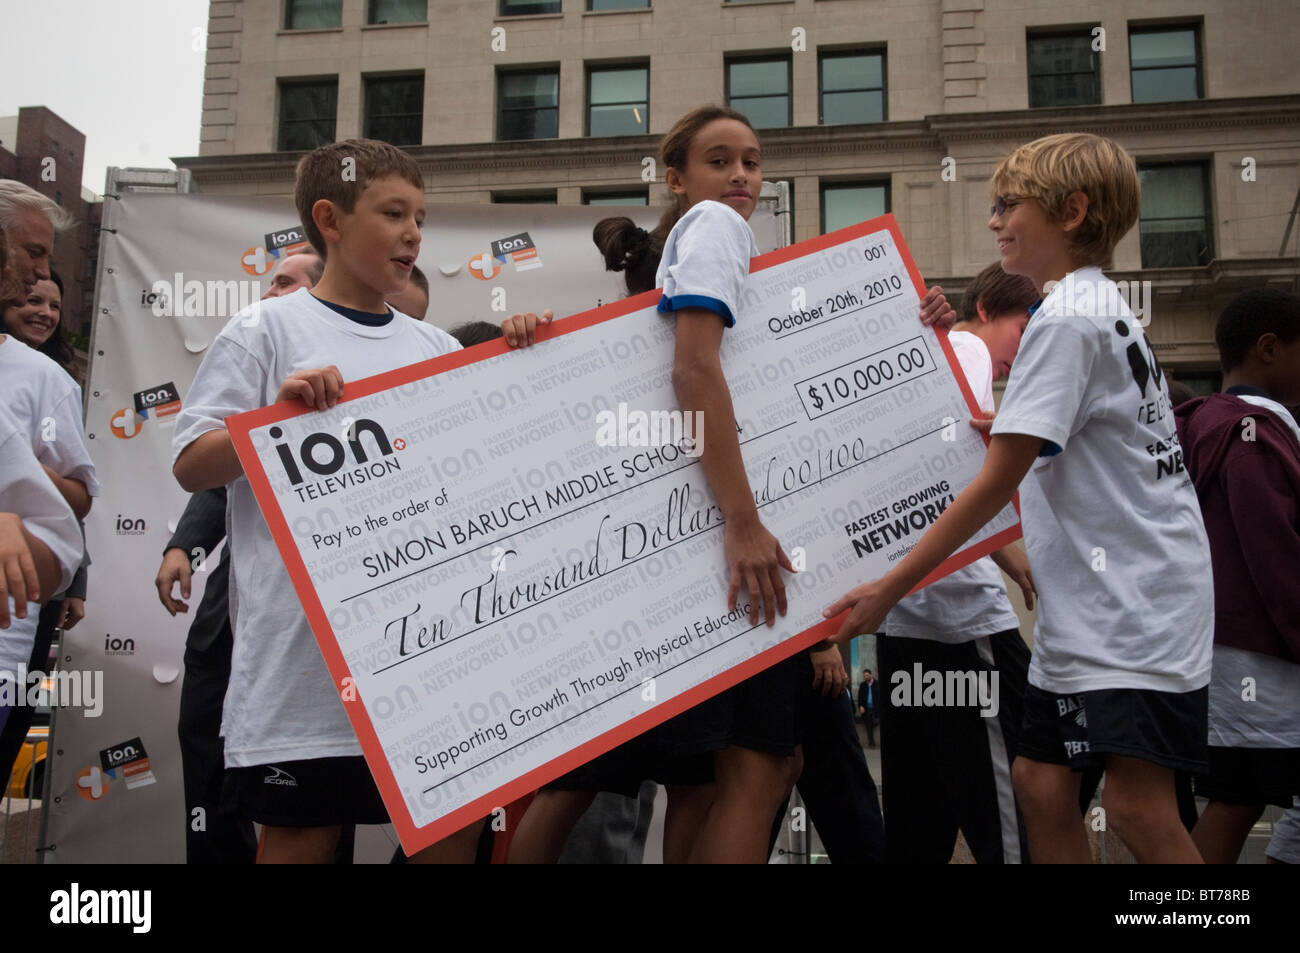 Middle school students receive giant check donation for physical fitness program - Stock Image